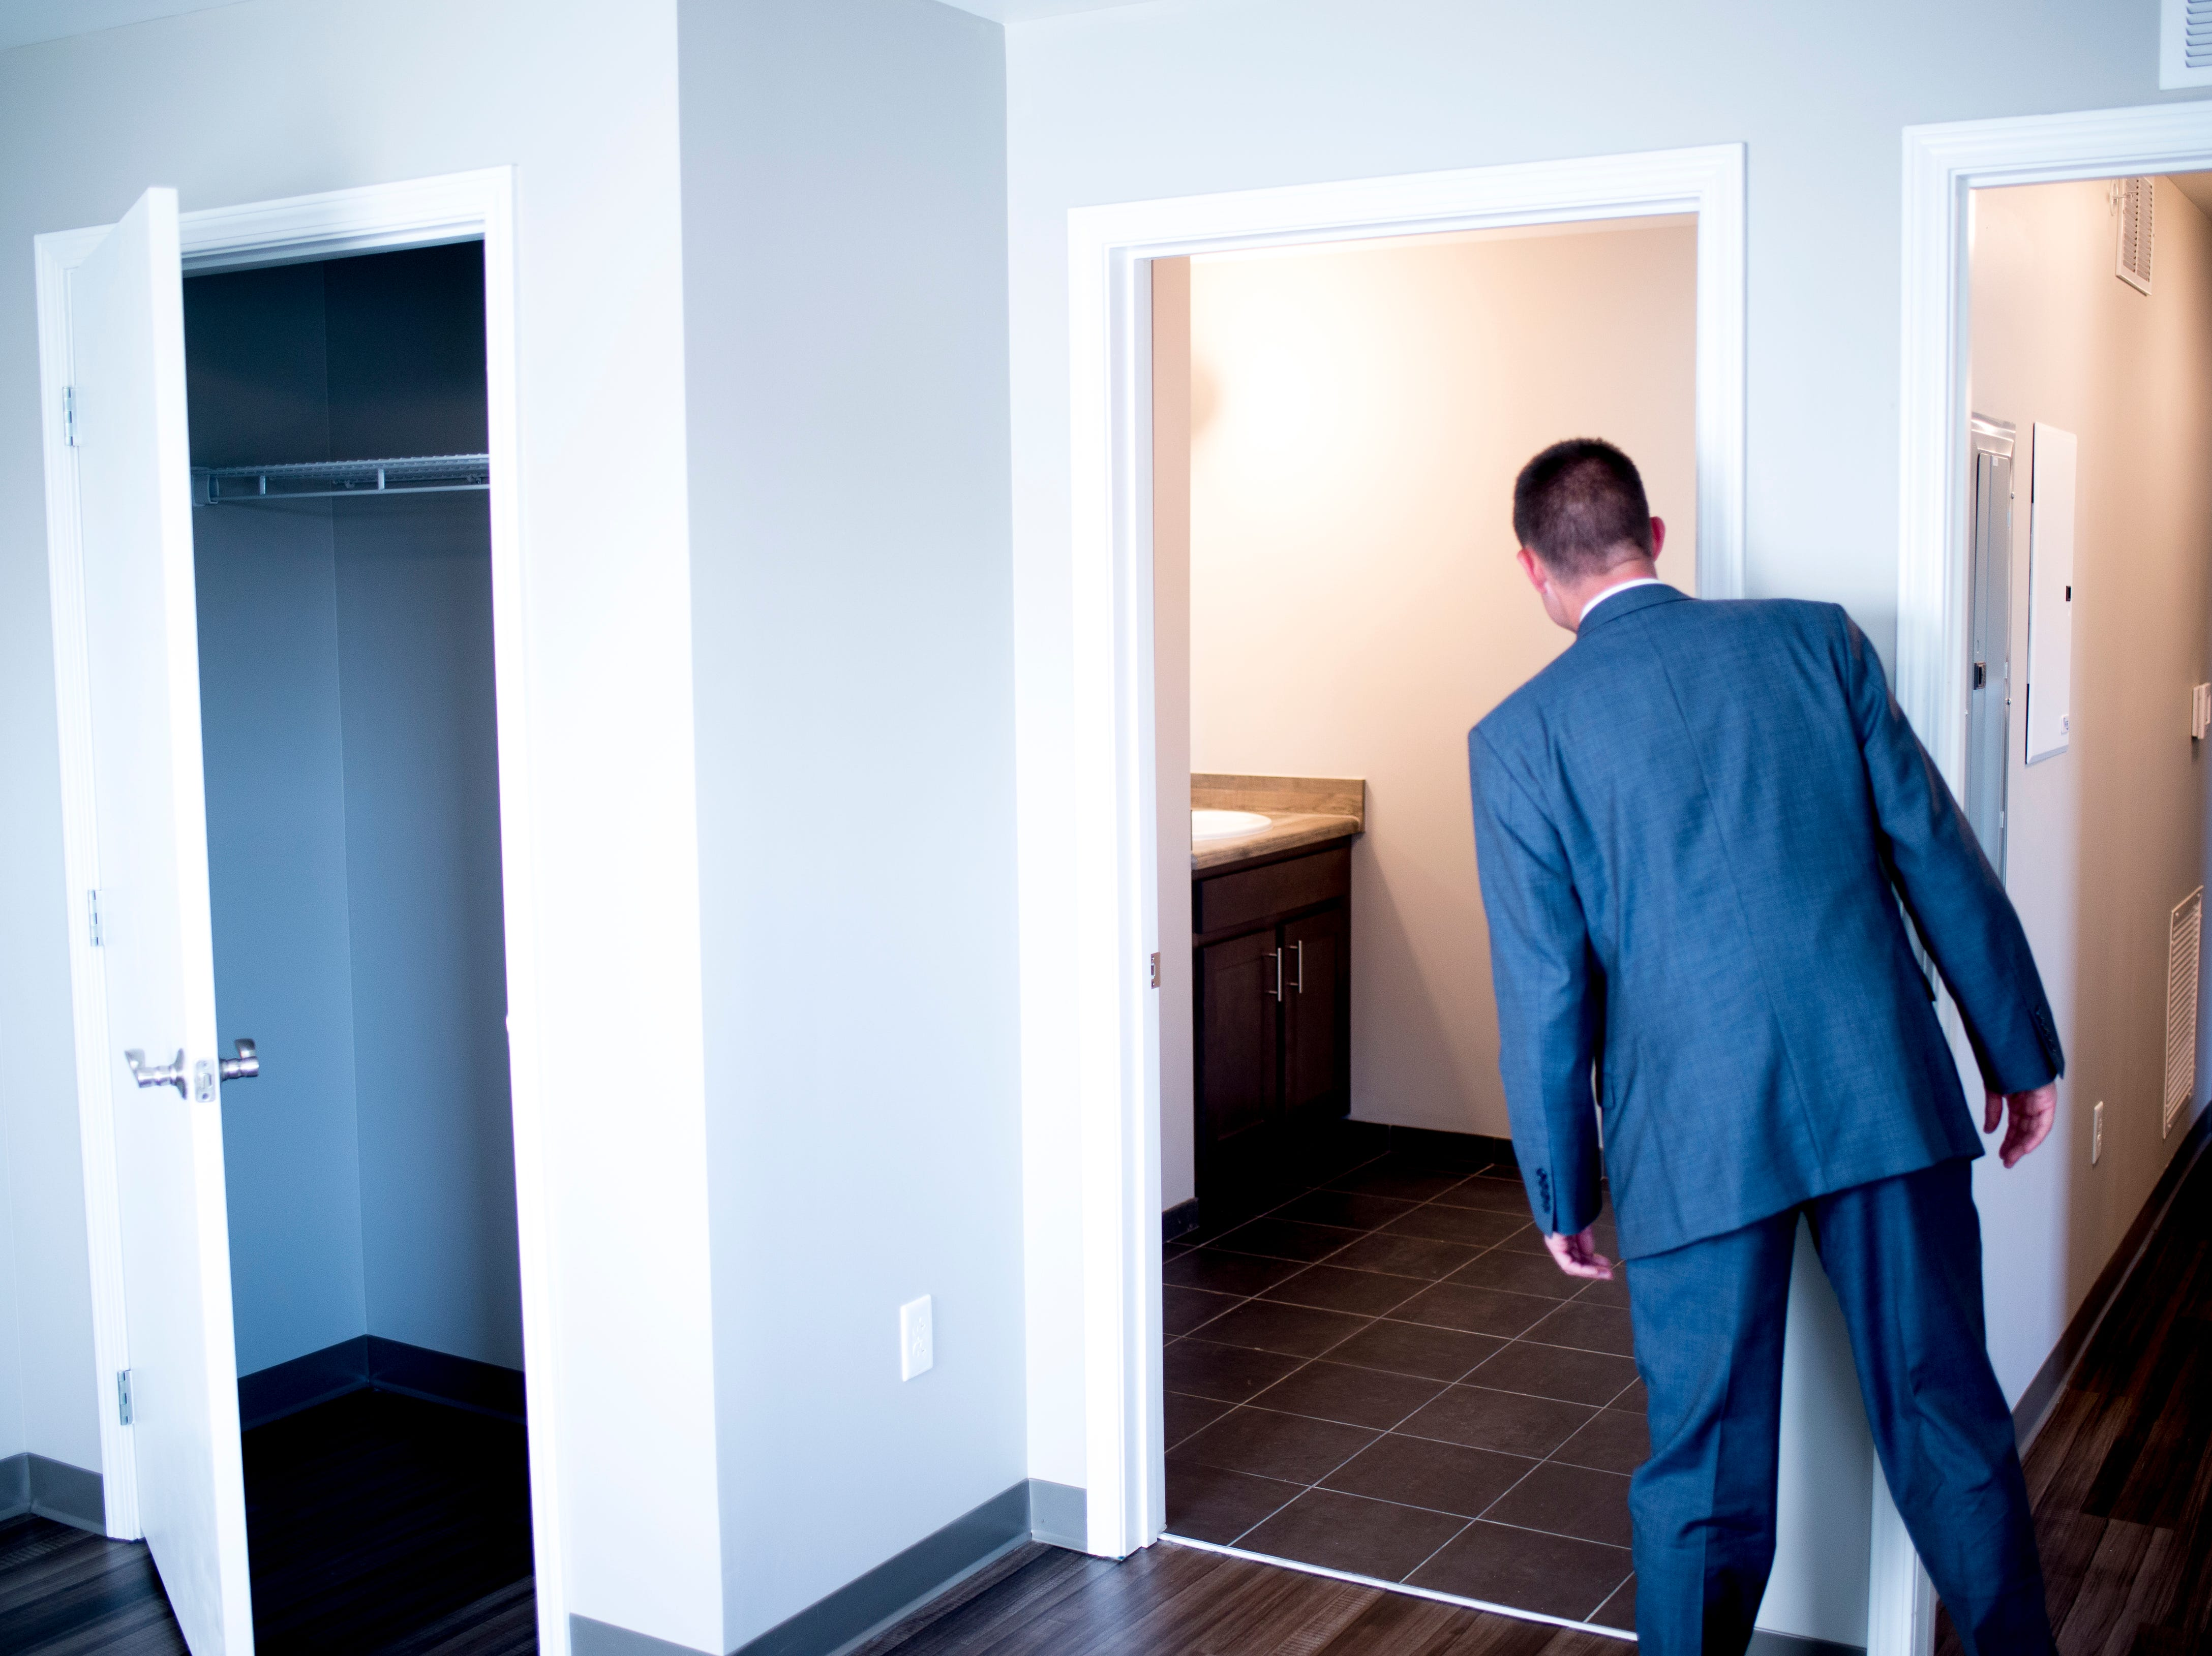 An attendee takes a peek inside one of the Five Points Phase 2 affordable housing complex apartments in Knoxville, Tennessee on Wednesday, September 19, 2018. The 10-building, 84-unit affordable housing complex has been part of Mayor Rogero's focus on affordable housing.